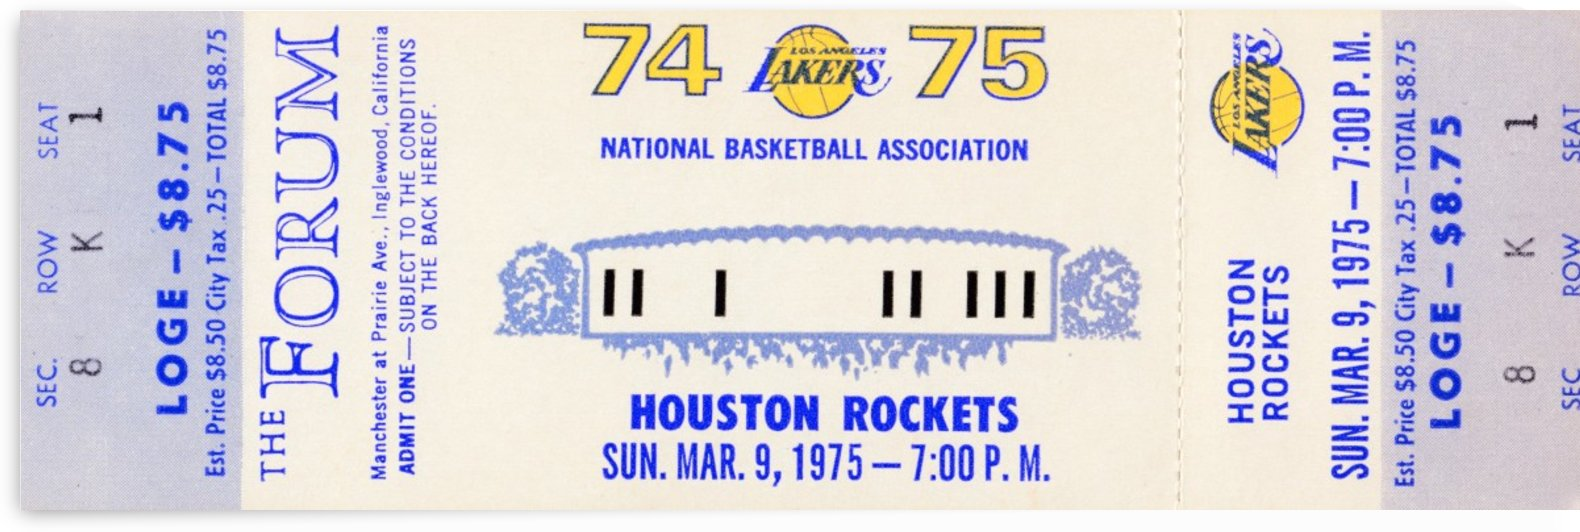 1974 Los Angeles Lakers by Row One Brand